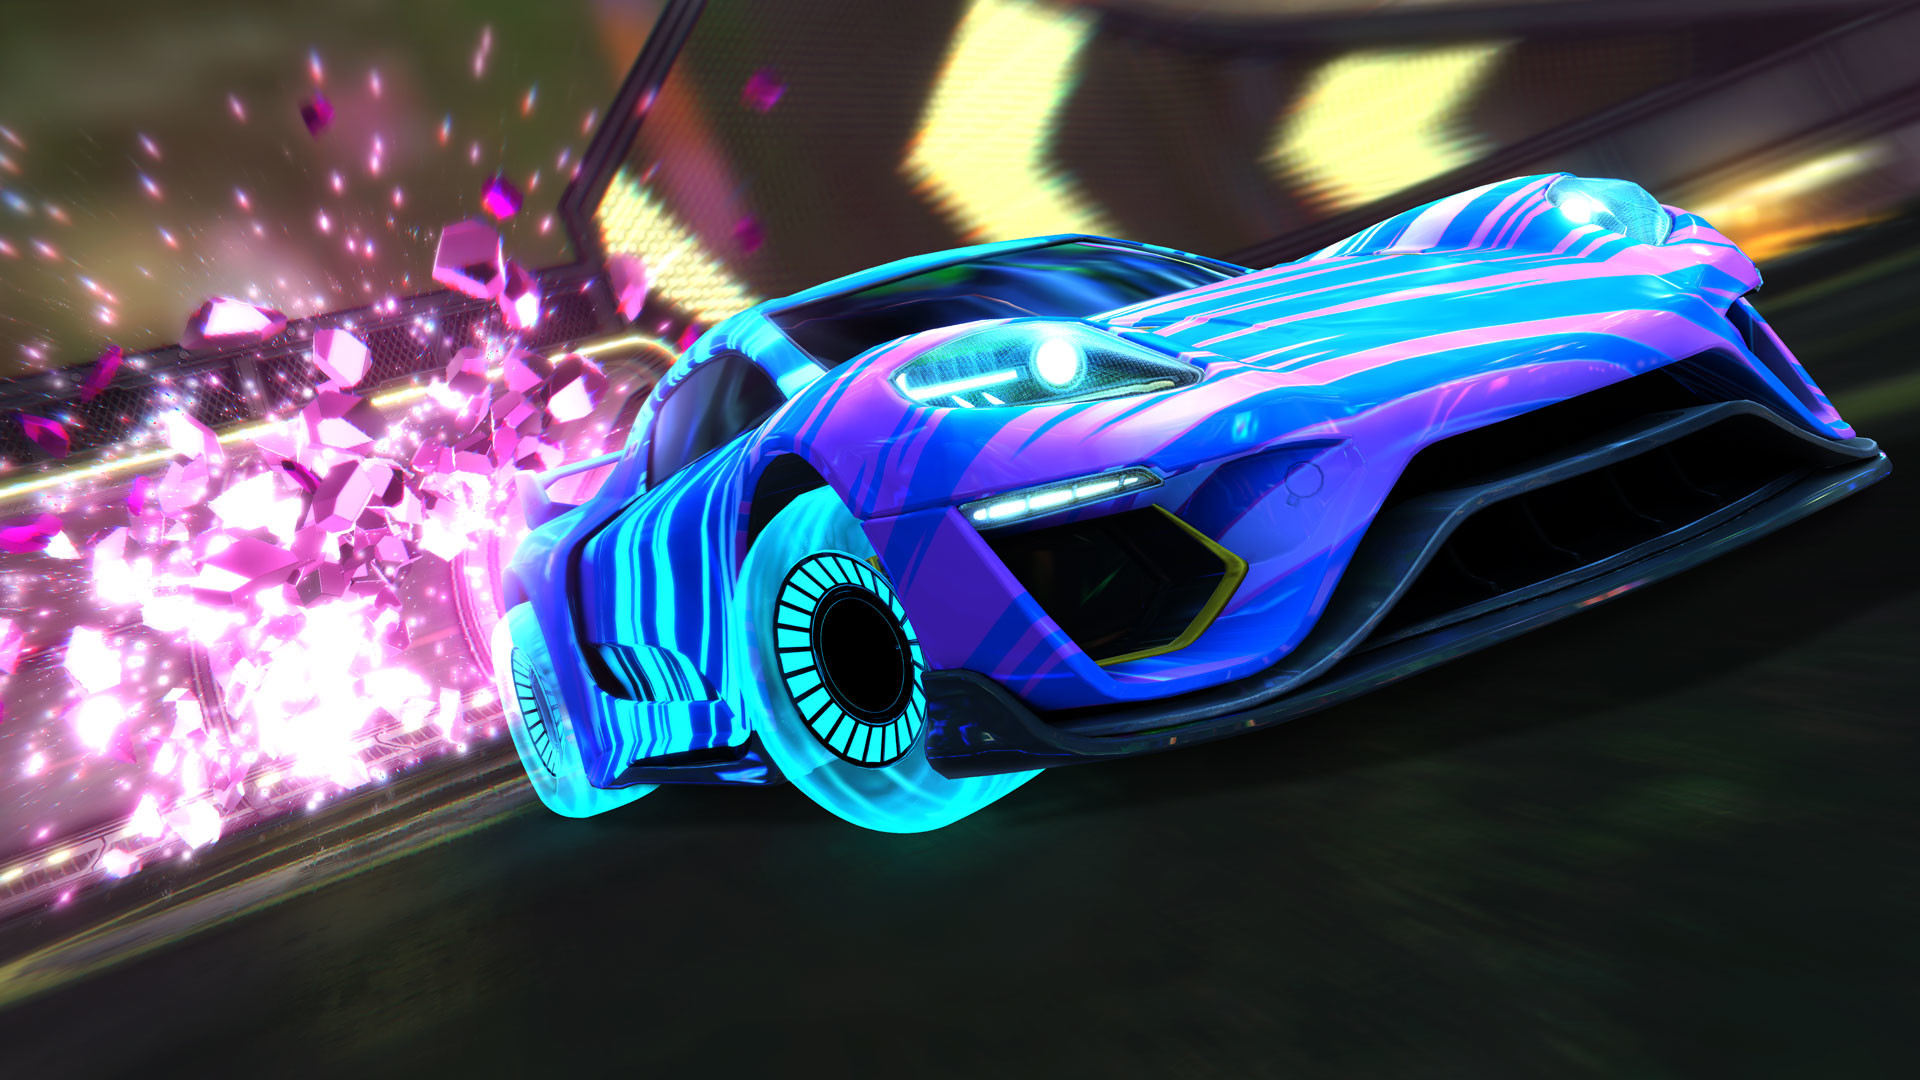 Buy Rocket League On The Epic Store For Free Money